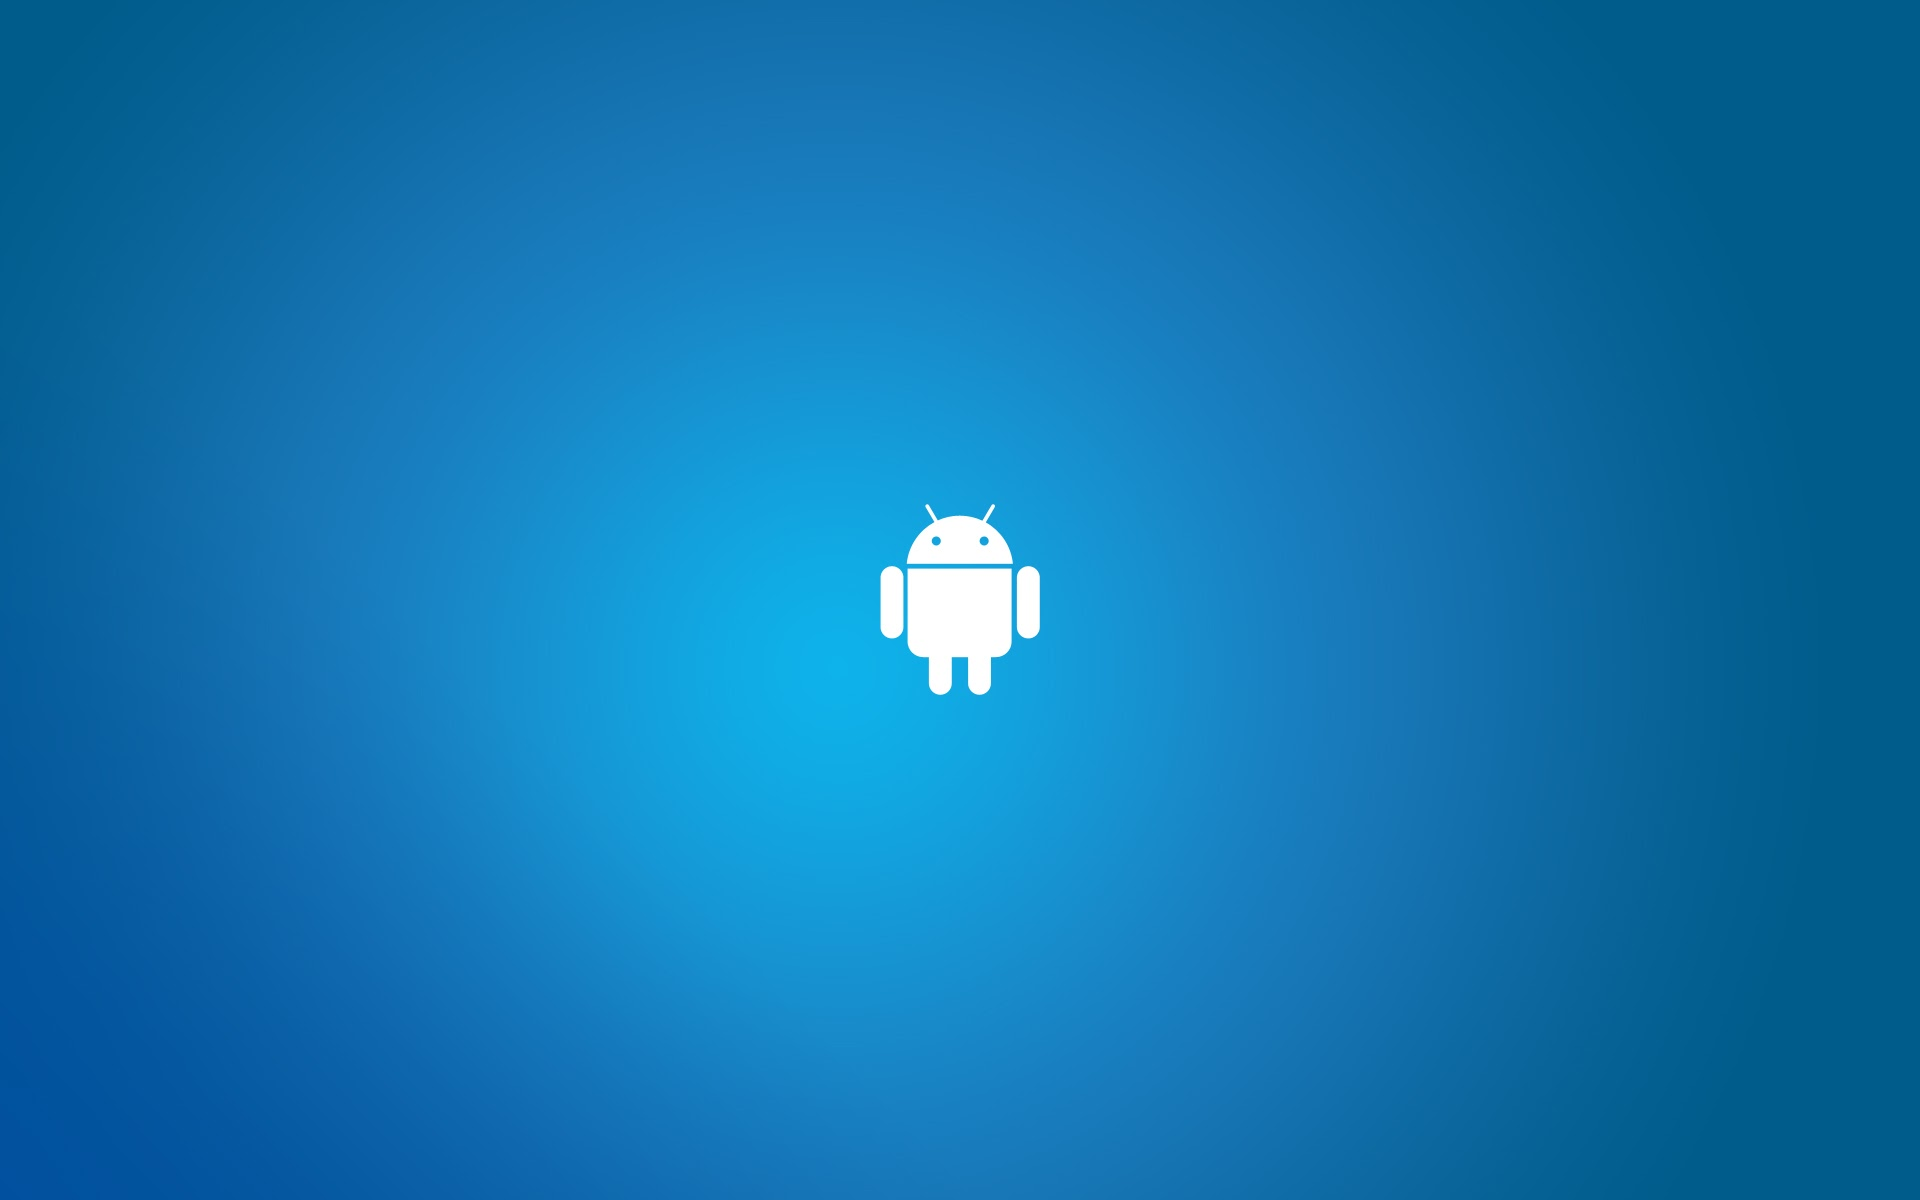 samsung hd wallpapers for mobile